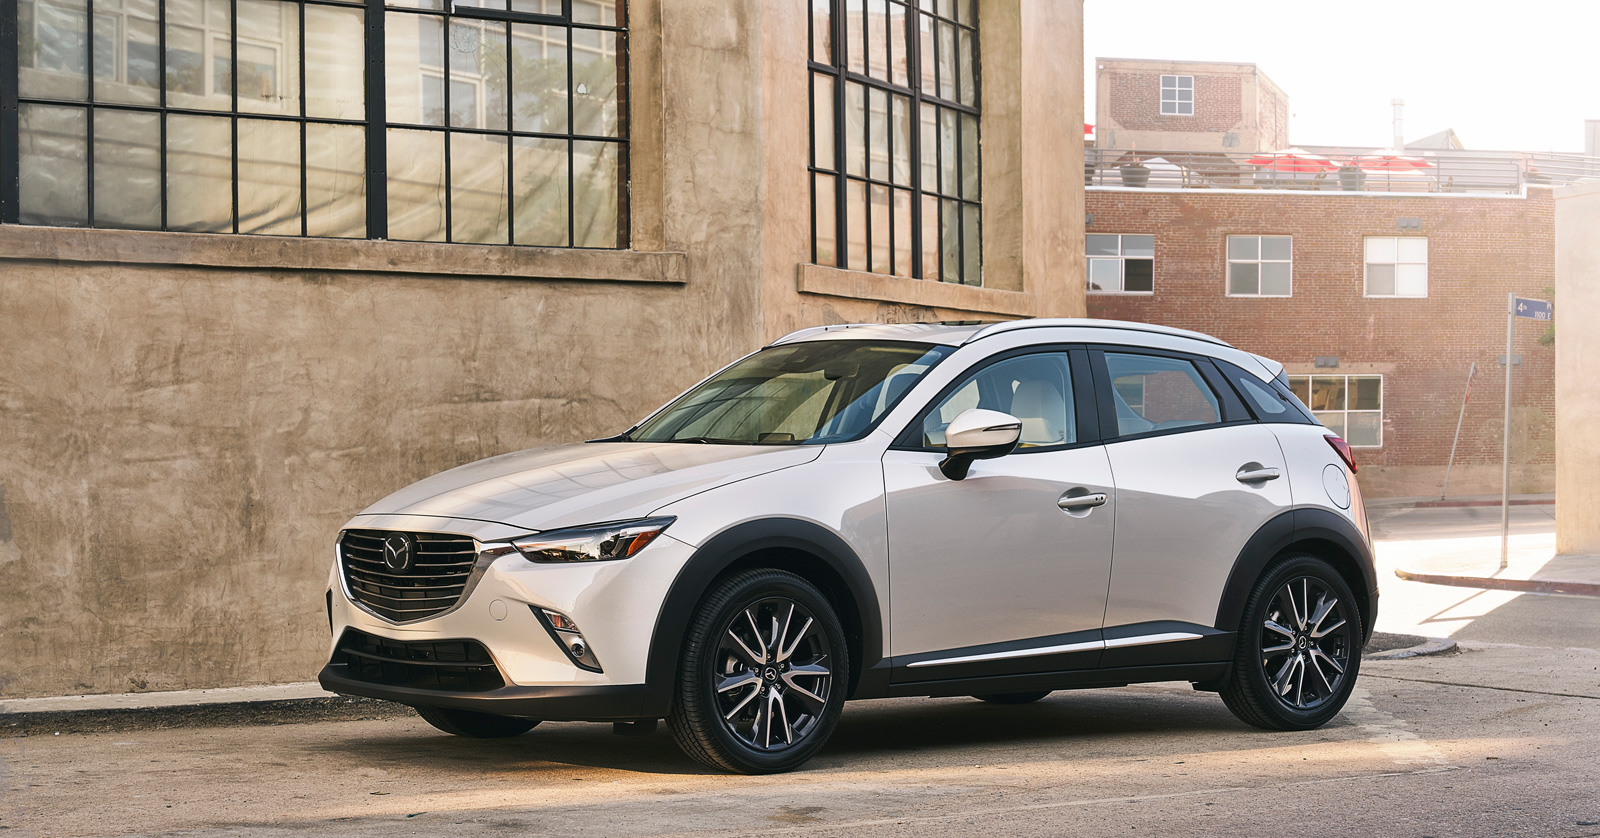 2018 mazda cx 3 adds new standard features increases price by 190 news. Black Bedroom Furniture Sets. Home Design Ideas